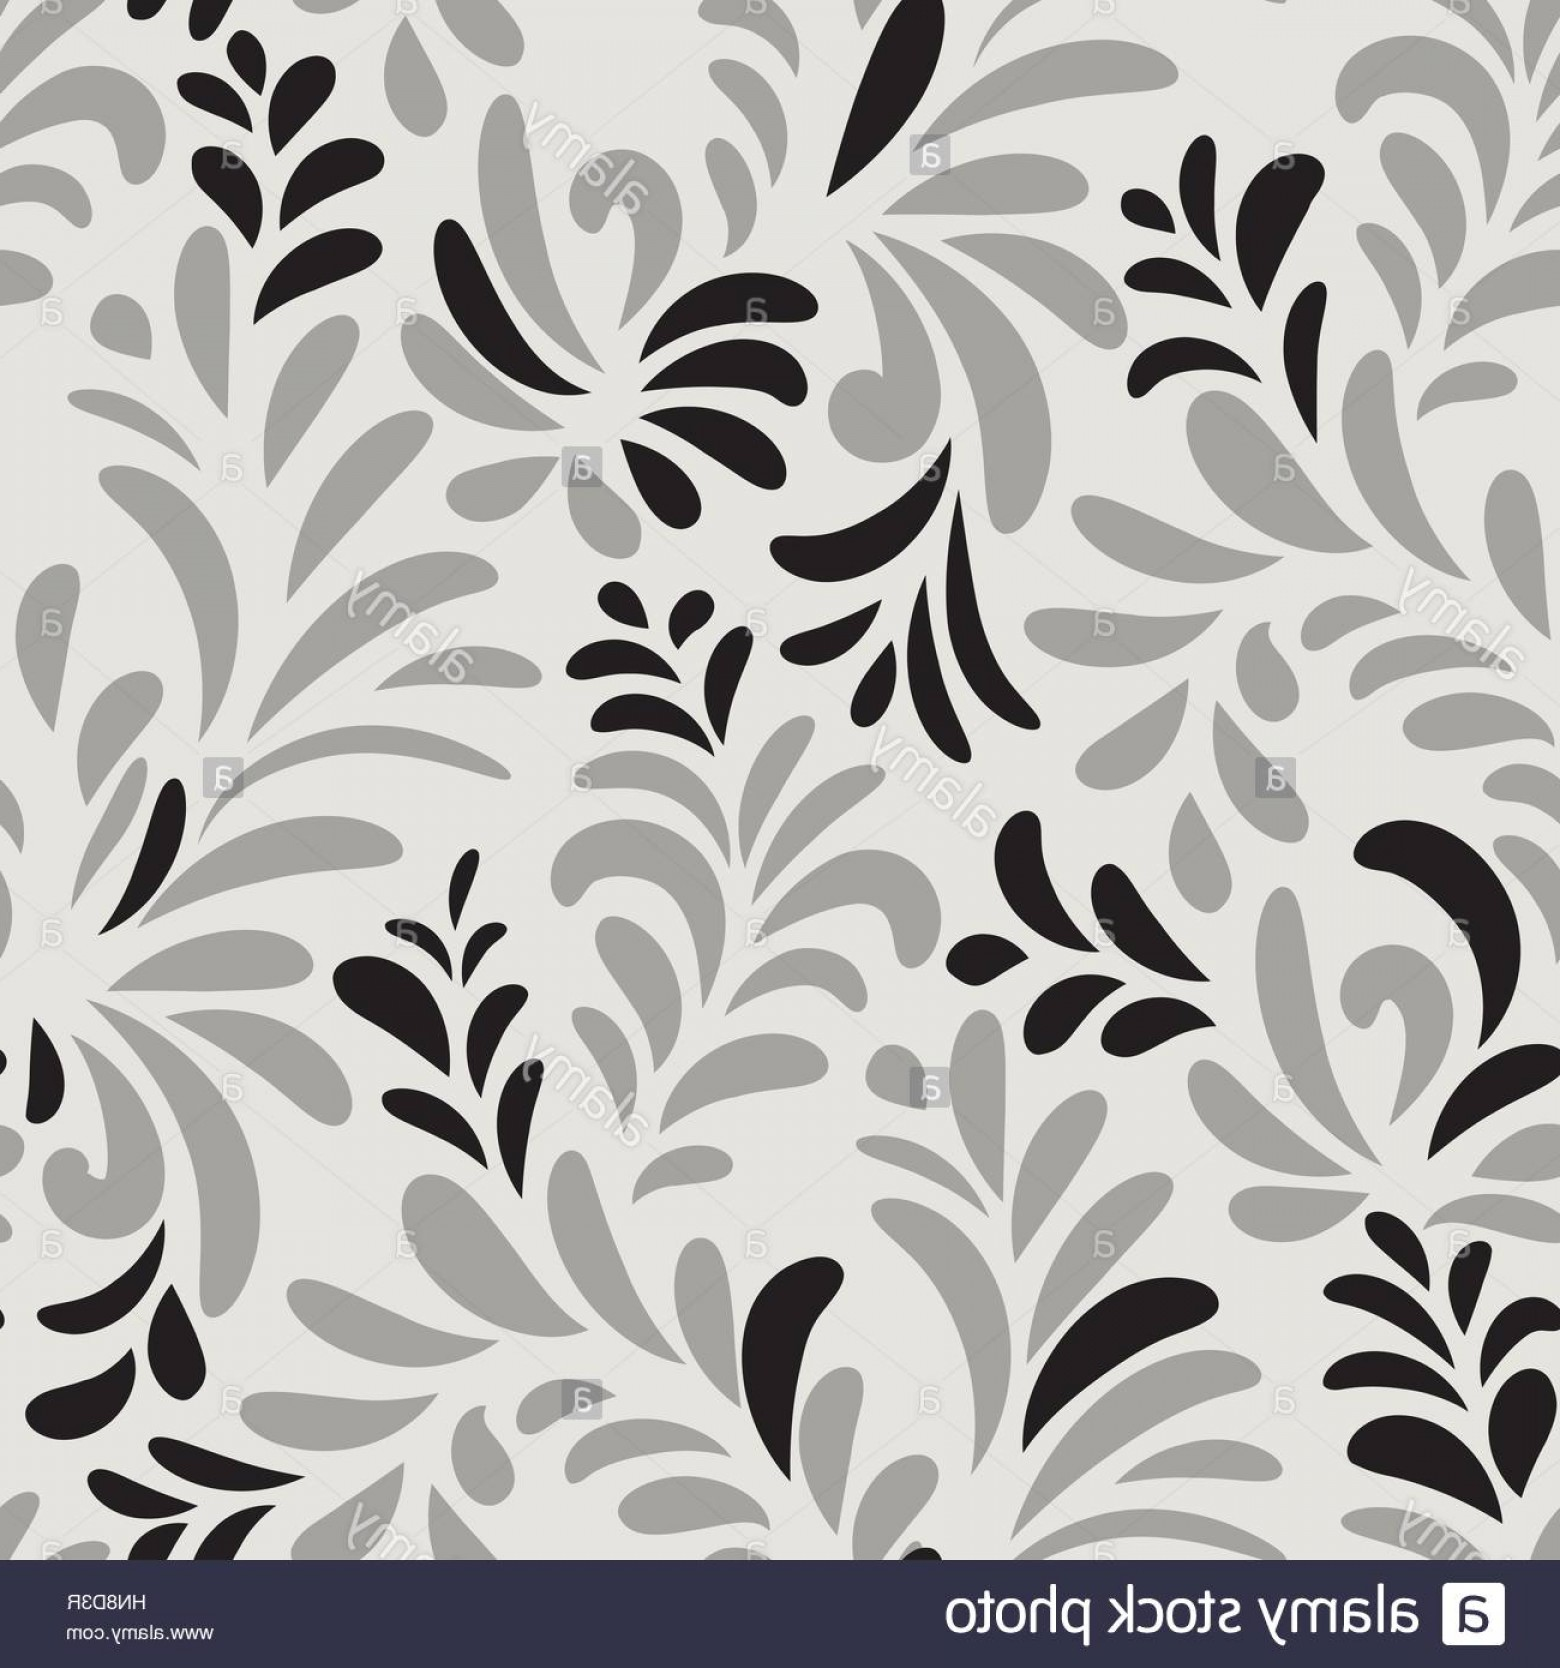 Vector Flourish Backgrounds: Stock Photo Abstact Vector Seamless Floral Geometric Pattern Floral Swirl Leaves